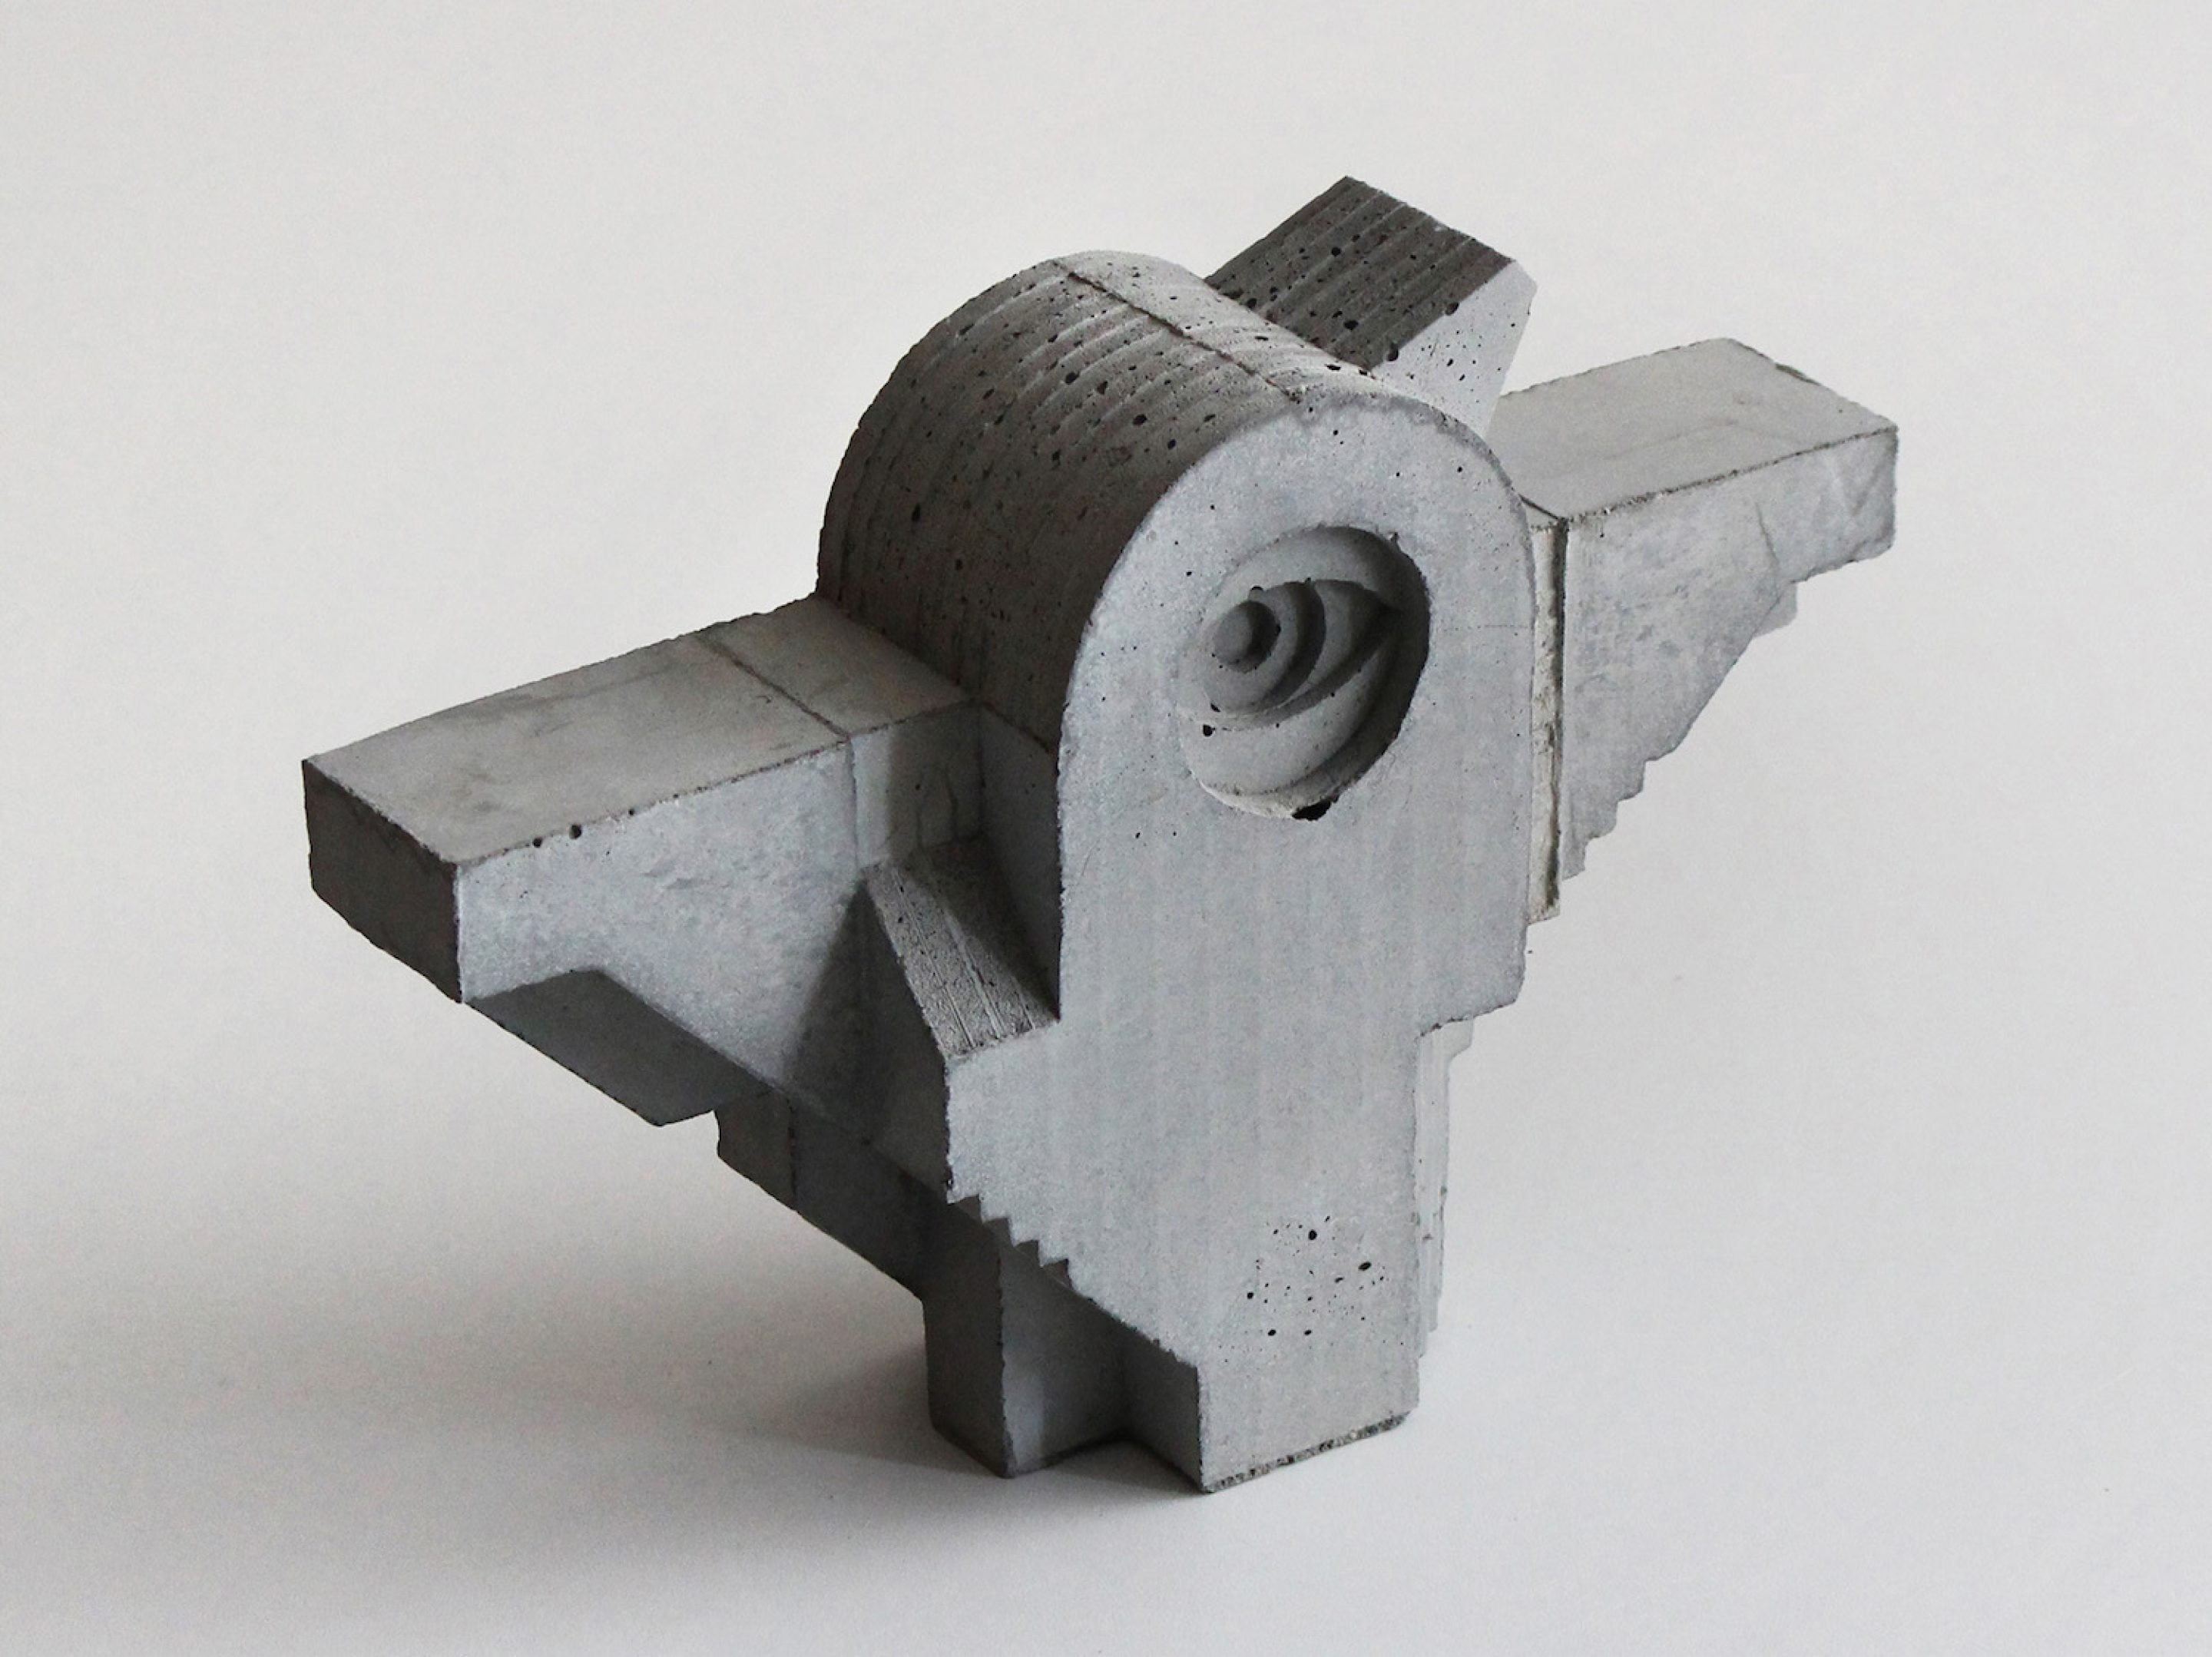 iGNANT_Art_Concrete_Modular_Sculptures_David_Umemoto08